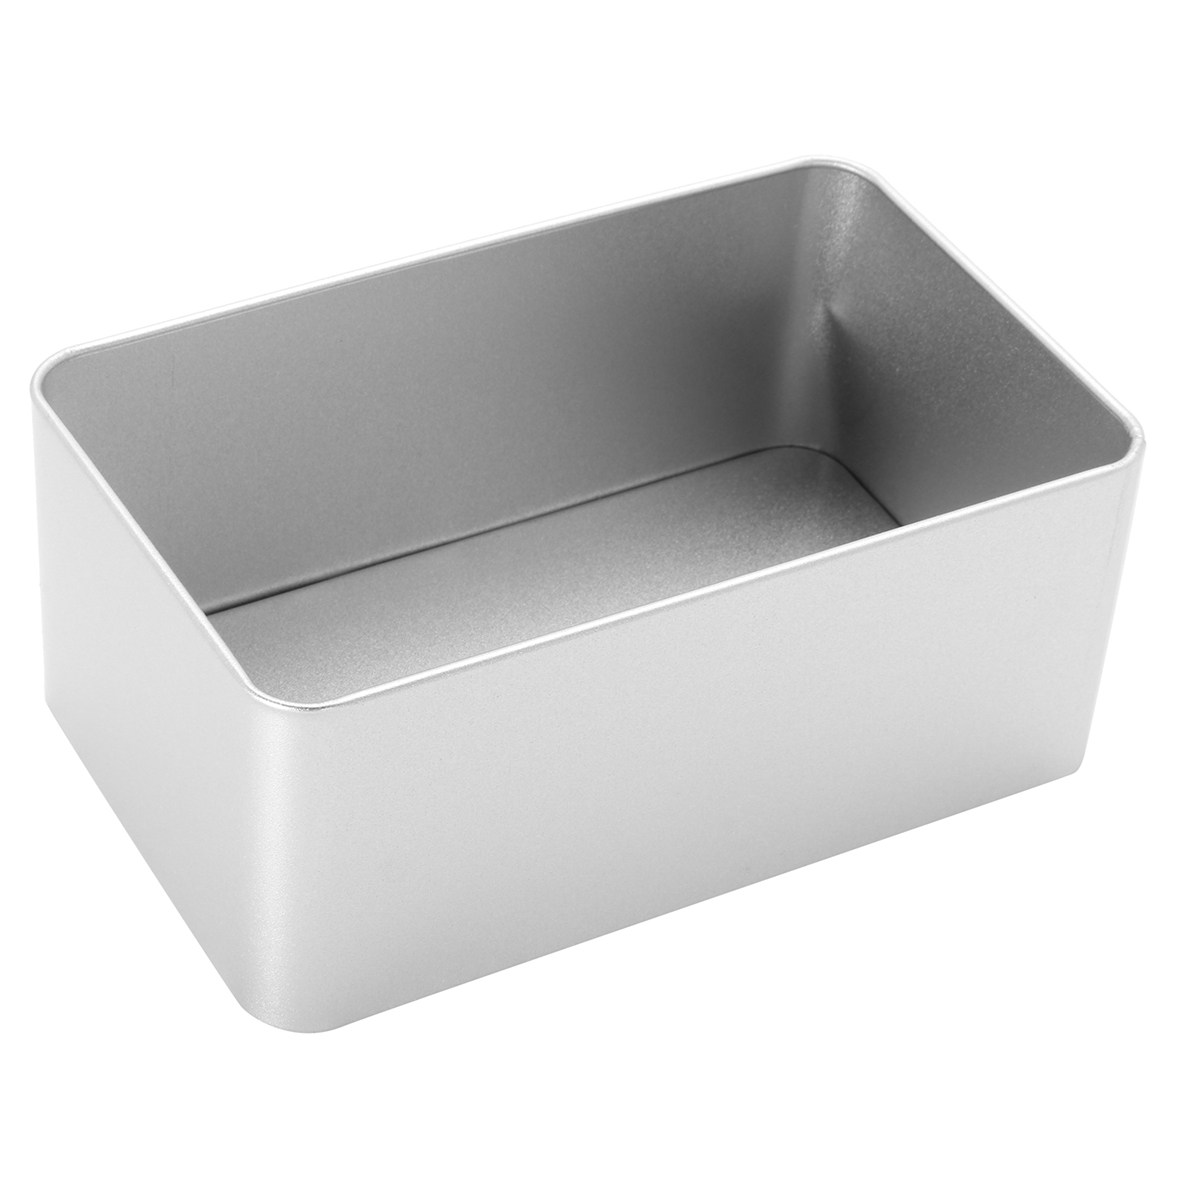 Opbergbox Metaal Us 3 87 Keuken Metalen Opbergdoos Met Bamboe Deksel Bins Brood Suiker Dozen Thee Kruid Stoarge Holder Voedsel Containers Organizer Supplies In